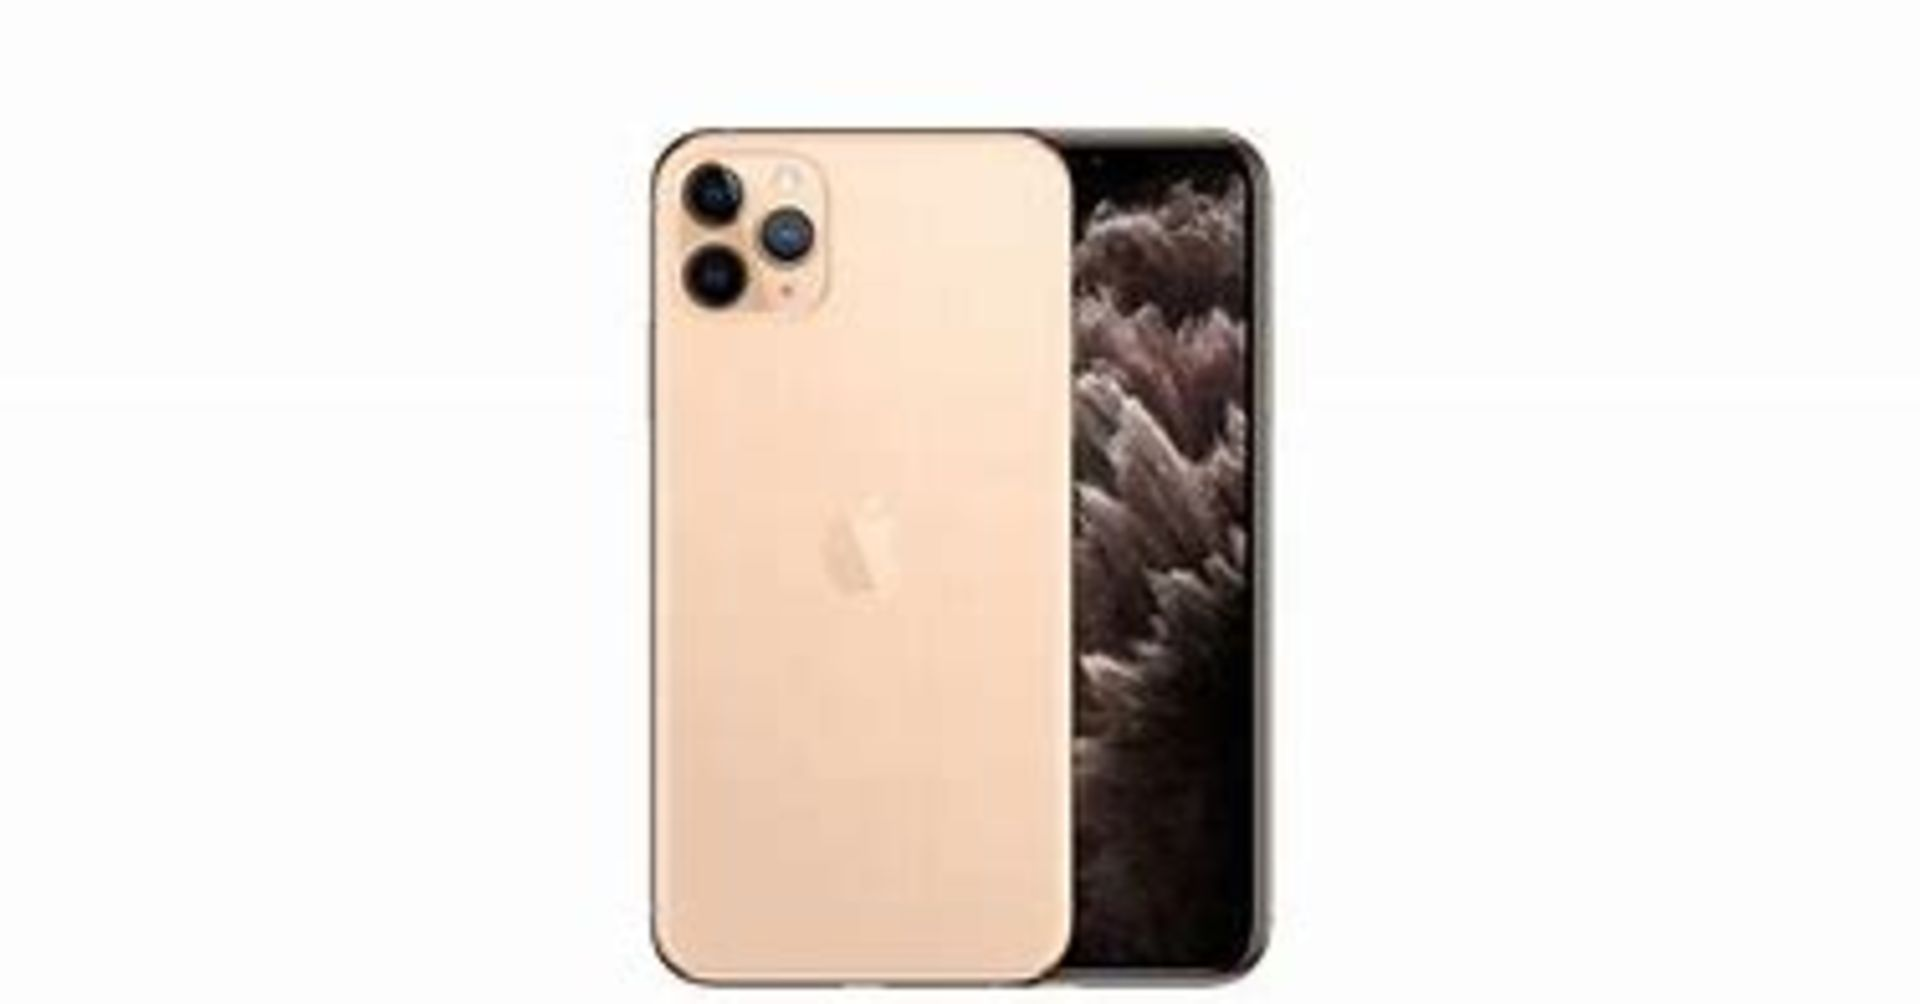 Lot 36 - Apple iPhone 11 Pro Max 256GB Gold. RRP £1300 - Grade A - Perfect Working Condition - (Fully